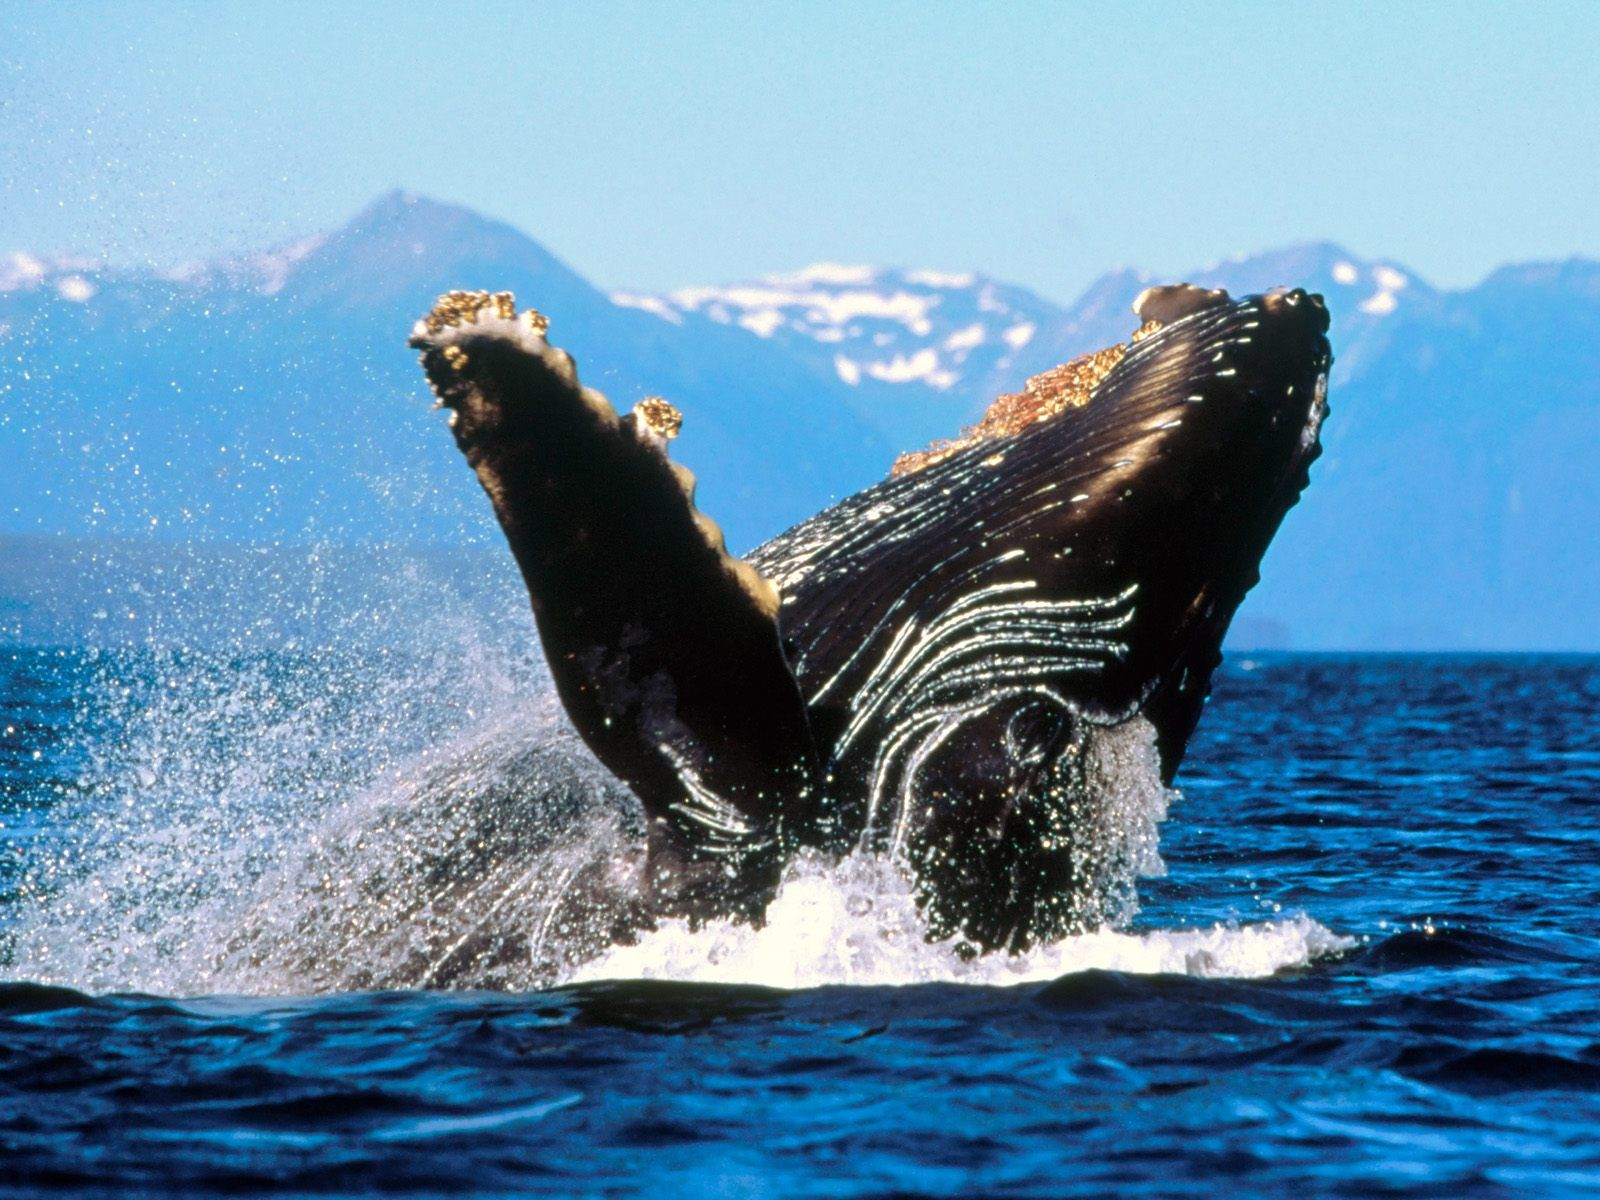 Pin By Billi Clem On Animals Animal Wallpaper Sea Life Wallpaper Whale